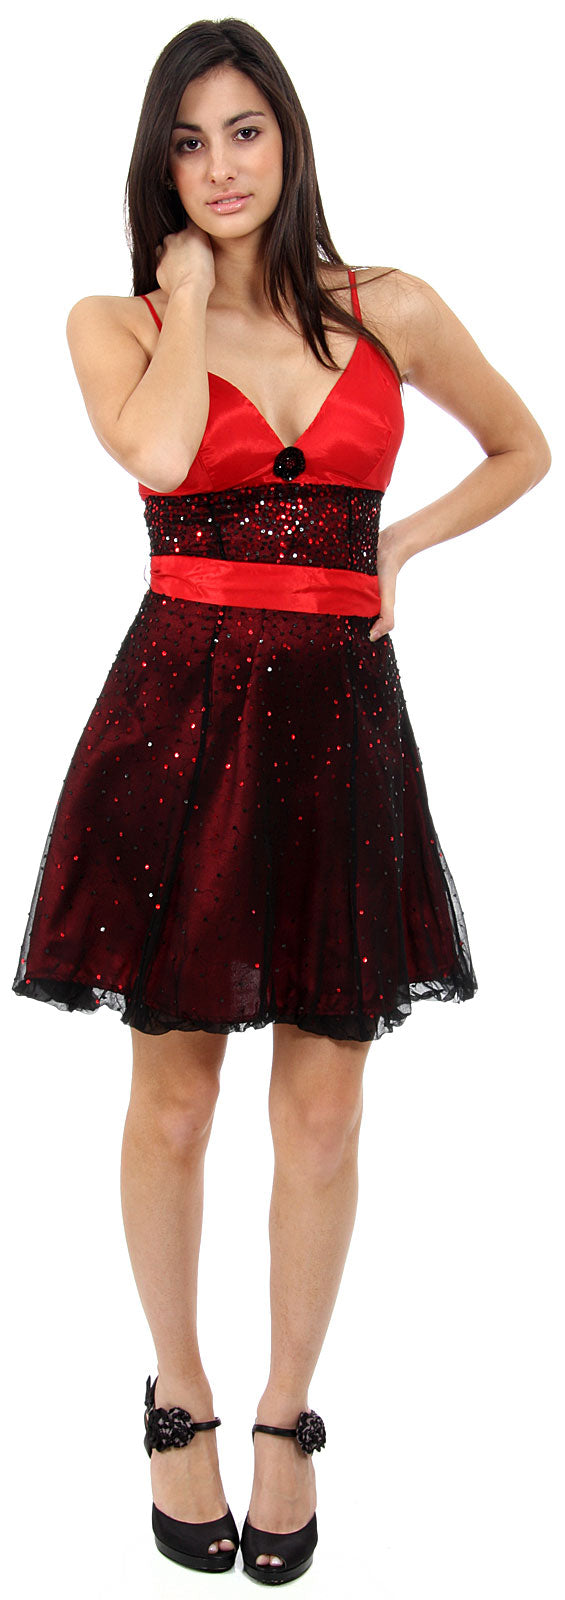 Main image of Short Sequined Party Dress With Removable Sash